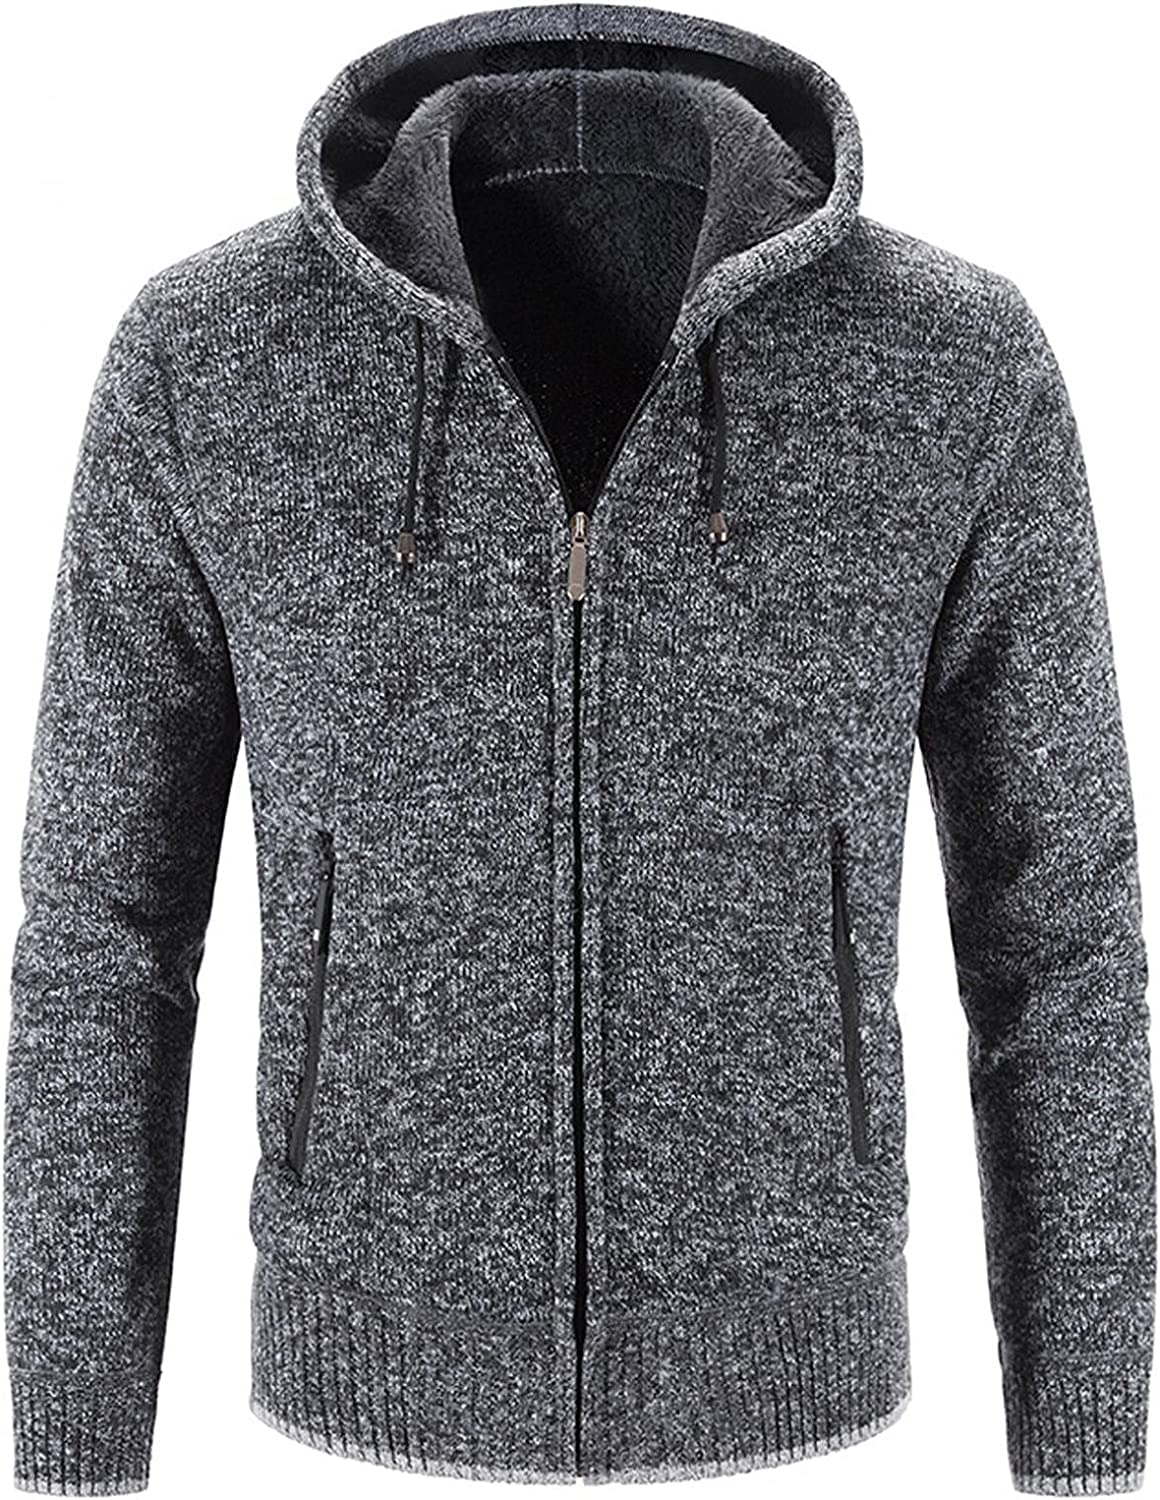 Aayomet Hoodies Cardigan for Men Winter Warm Solid Zip Long Sleeve Casual Hooded Pullover Tops Blouses Coat with Pockets